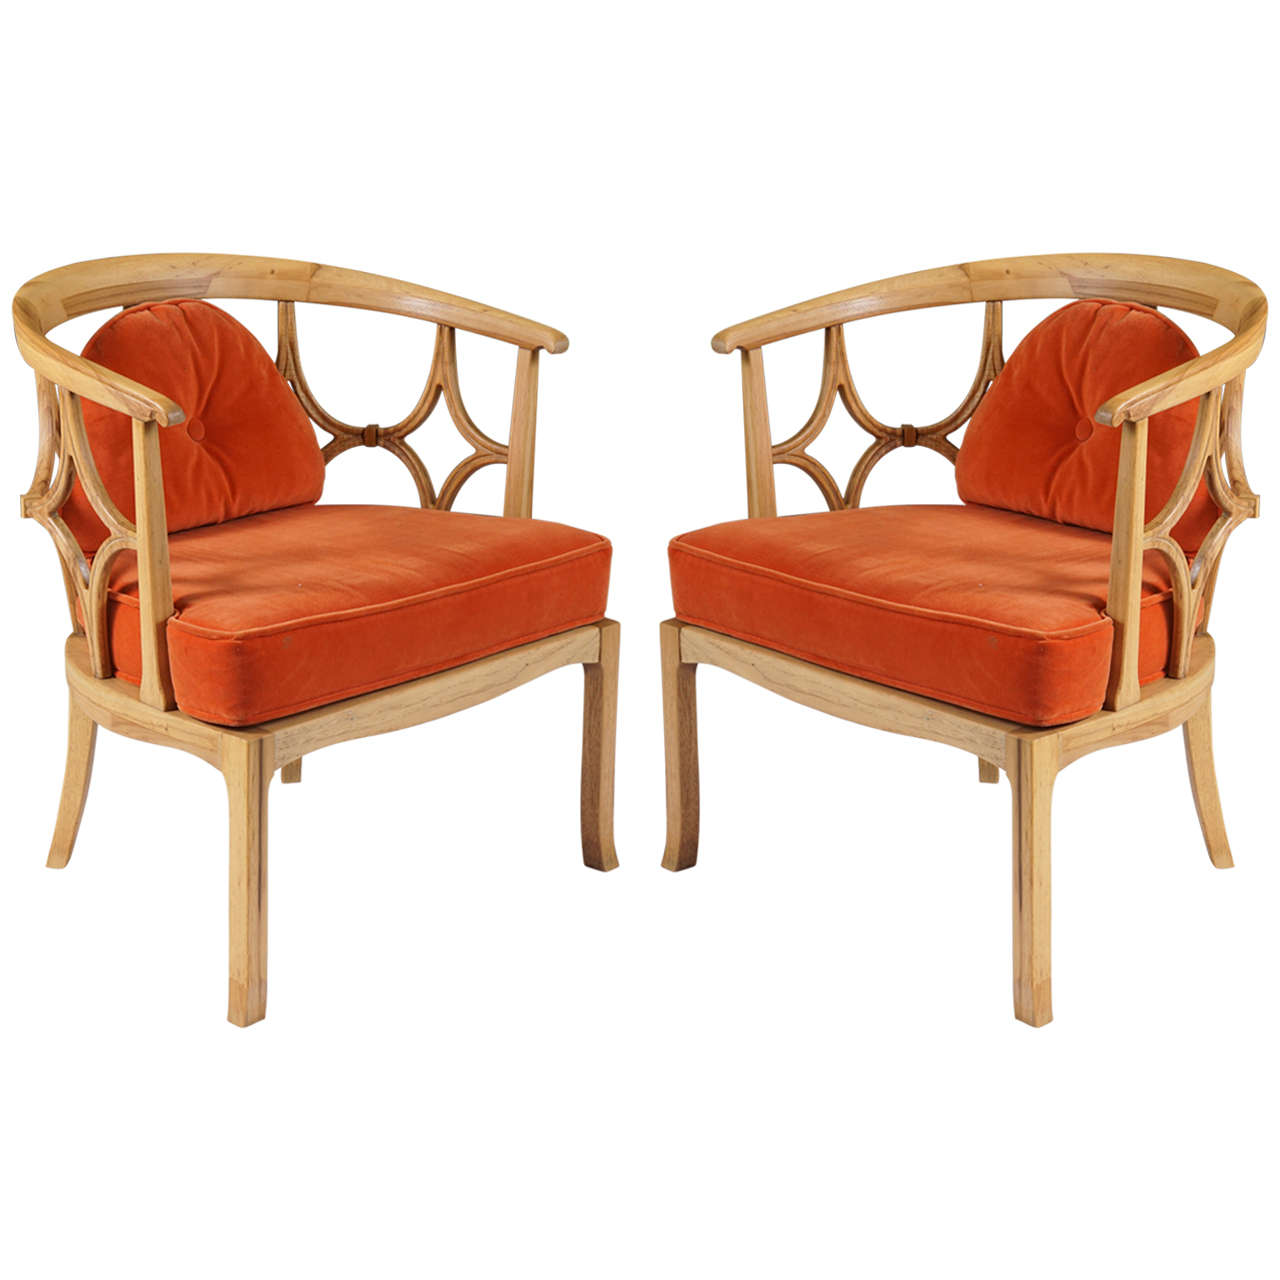 Beau Pair Of Mid Century Modern Chairs After Dorothy Draper For Sale